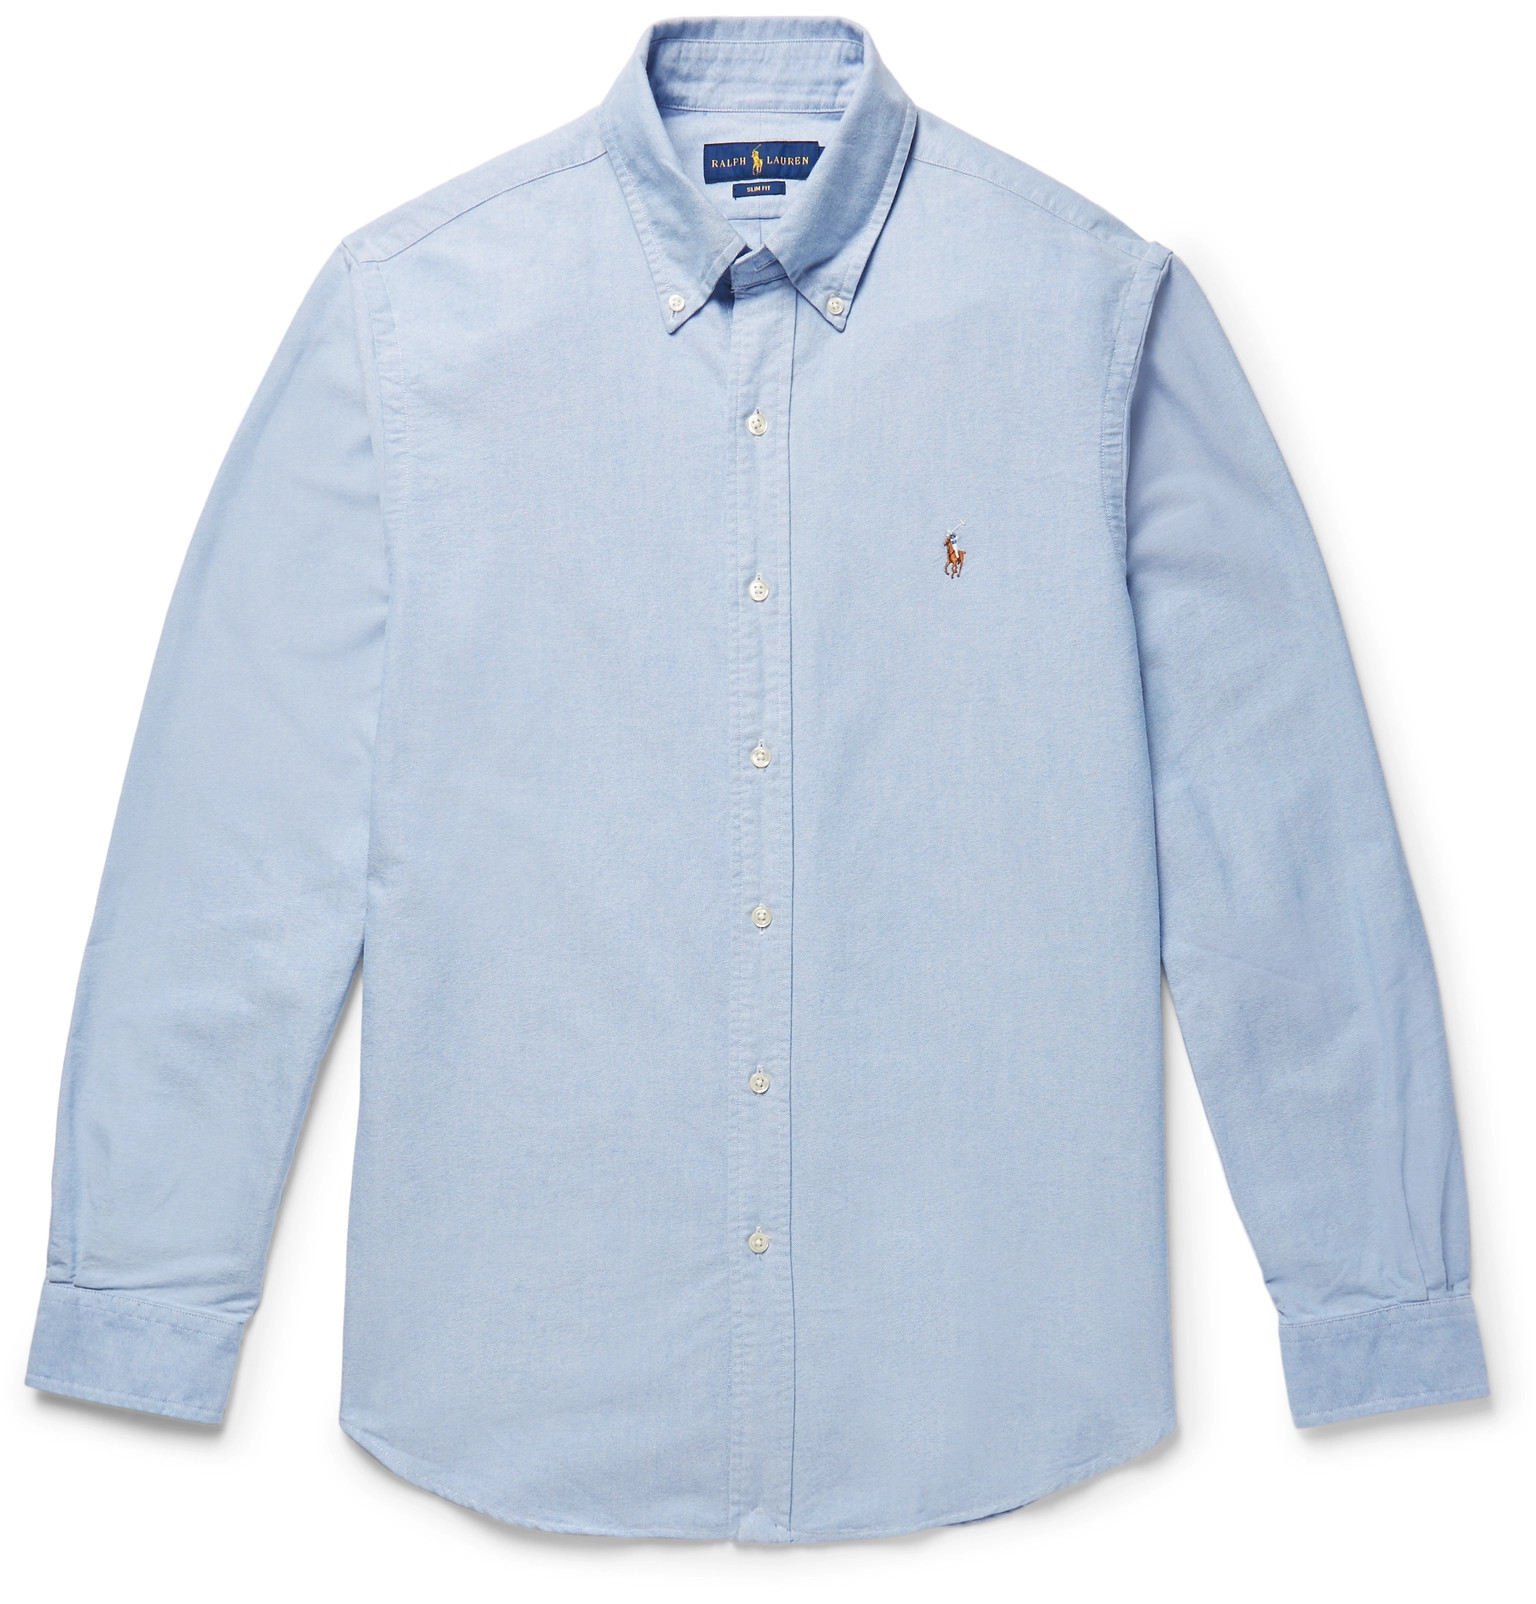 Polo Ralph LaurenSlim-Fit Cotton Oxford Shirt